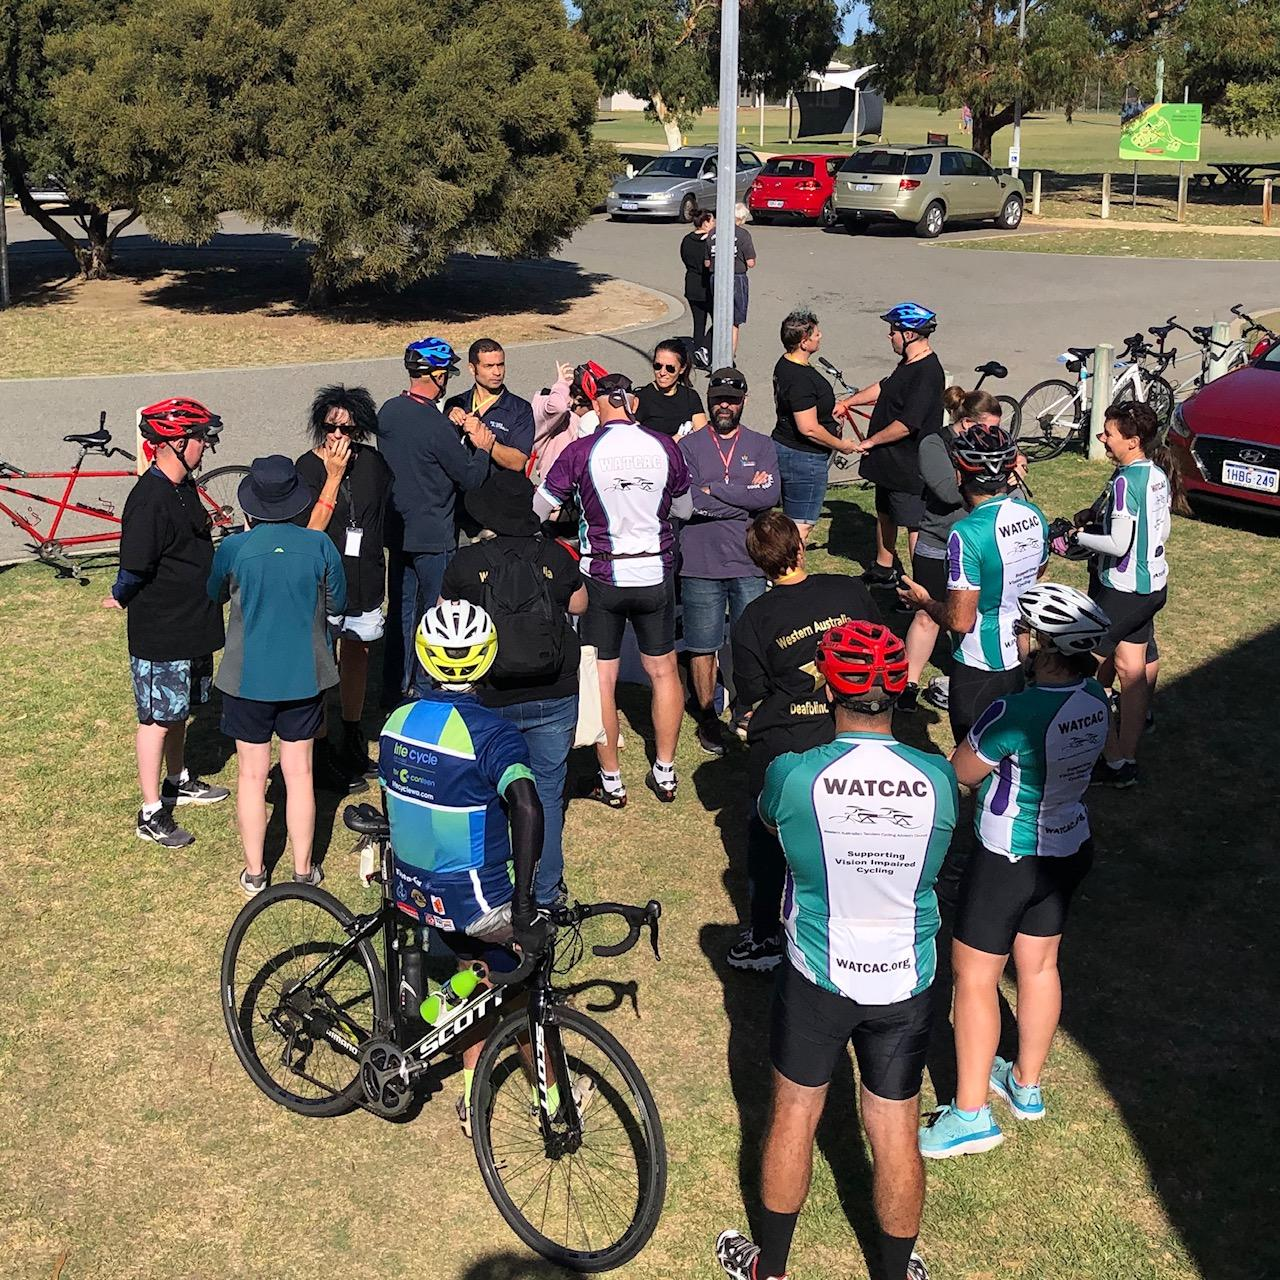 A group of a dozen or so people are standing outside in a loose cluster as Auslan interpreters and volunteer commguides run through the tandem cycling arrangements. A number of WATCAC volunteers are standing by to pair up and go riding!